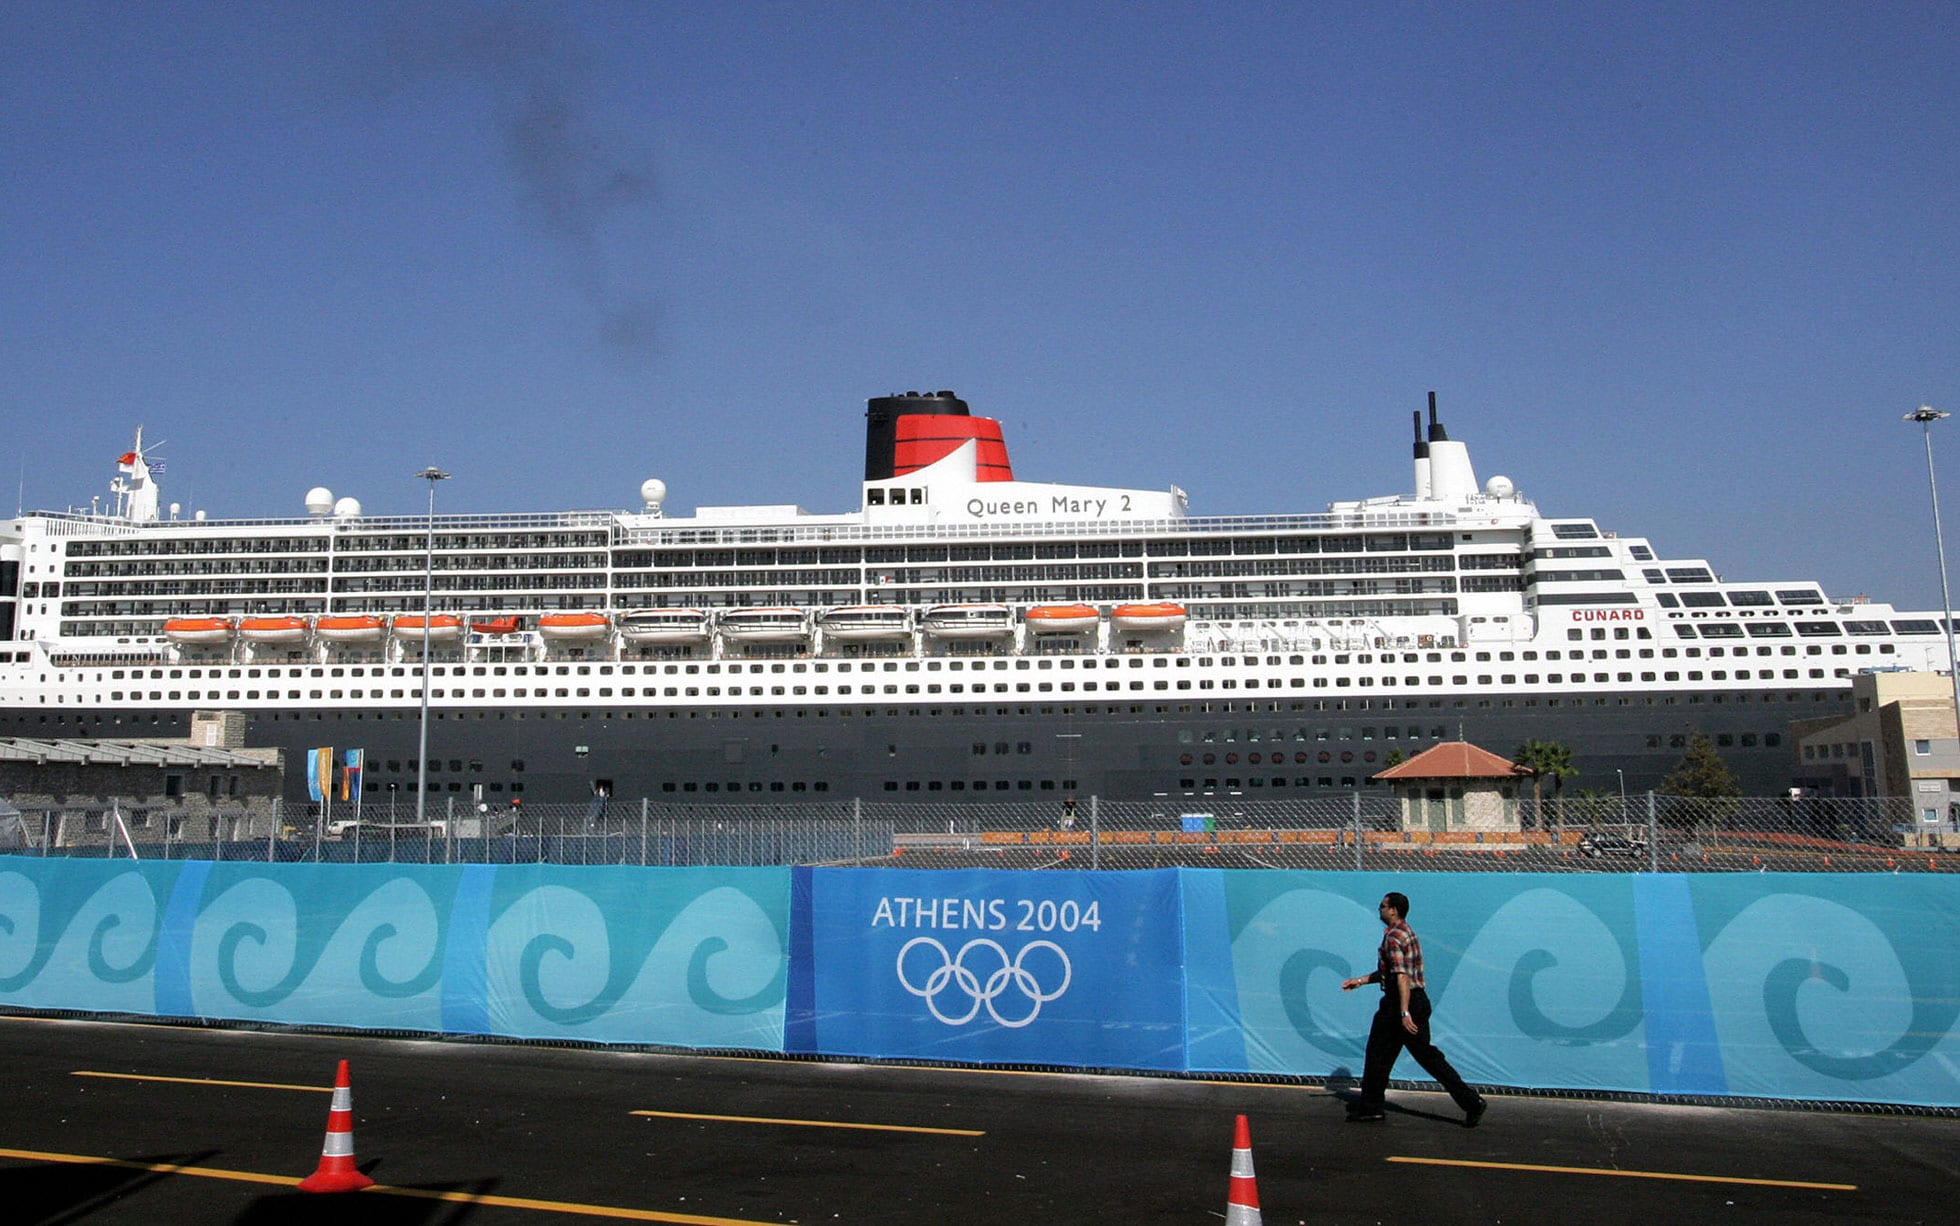 Queen Mary 2 at the 2004 Summer Olympics in Athens, Greece.